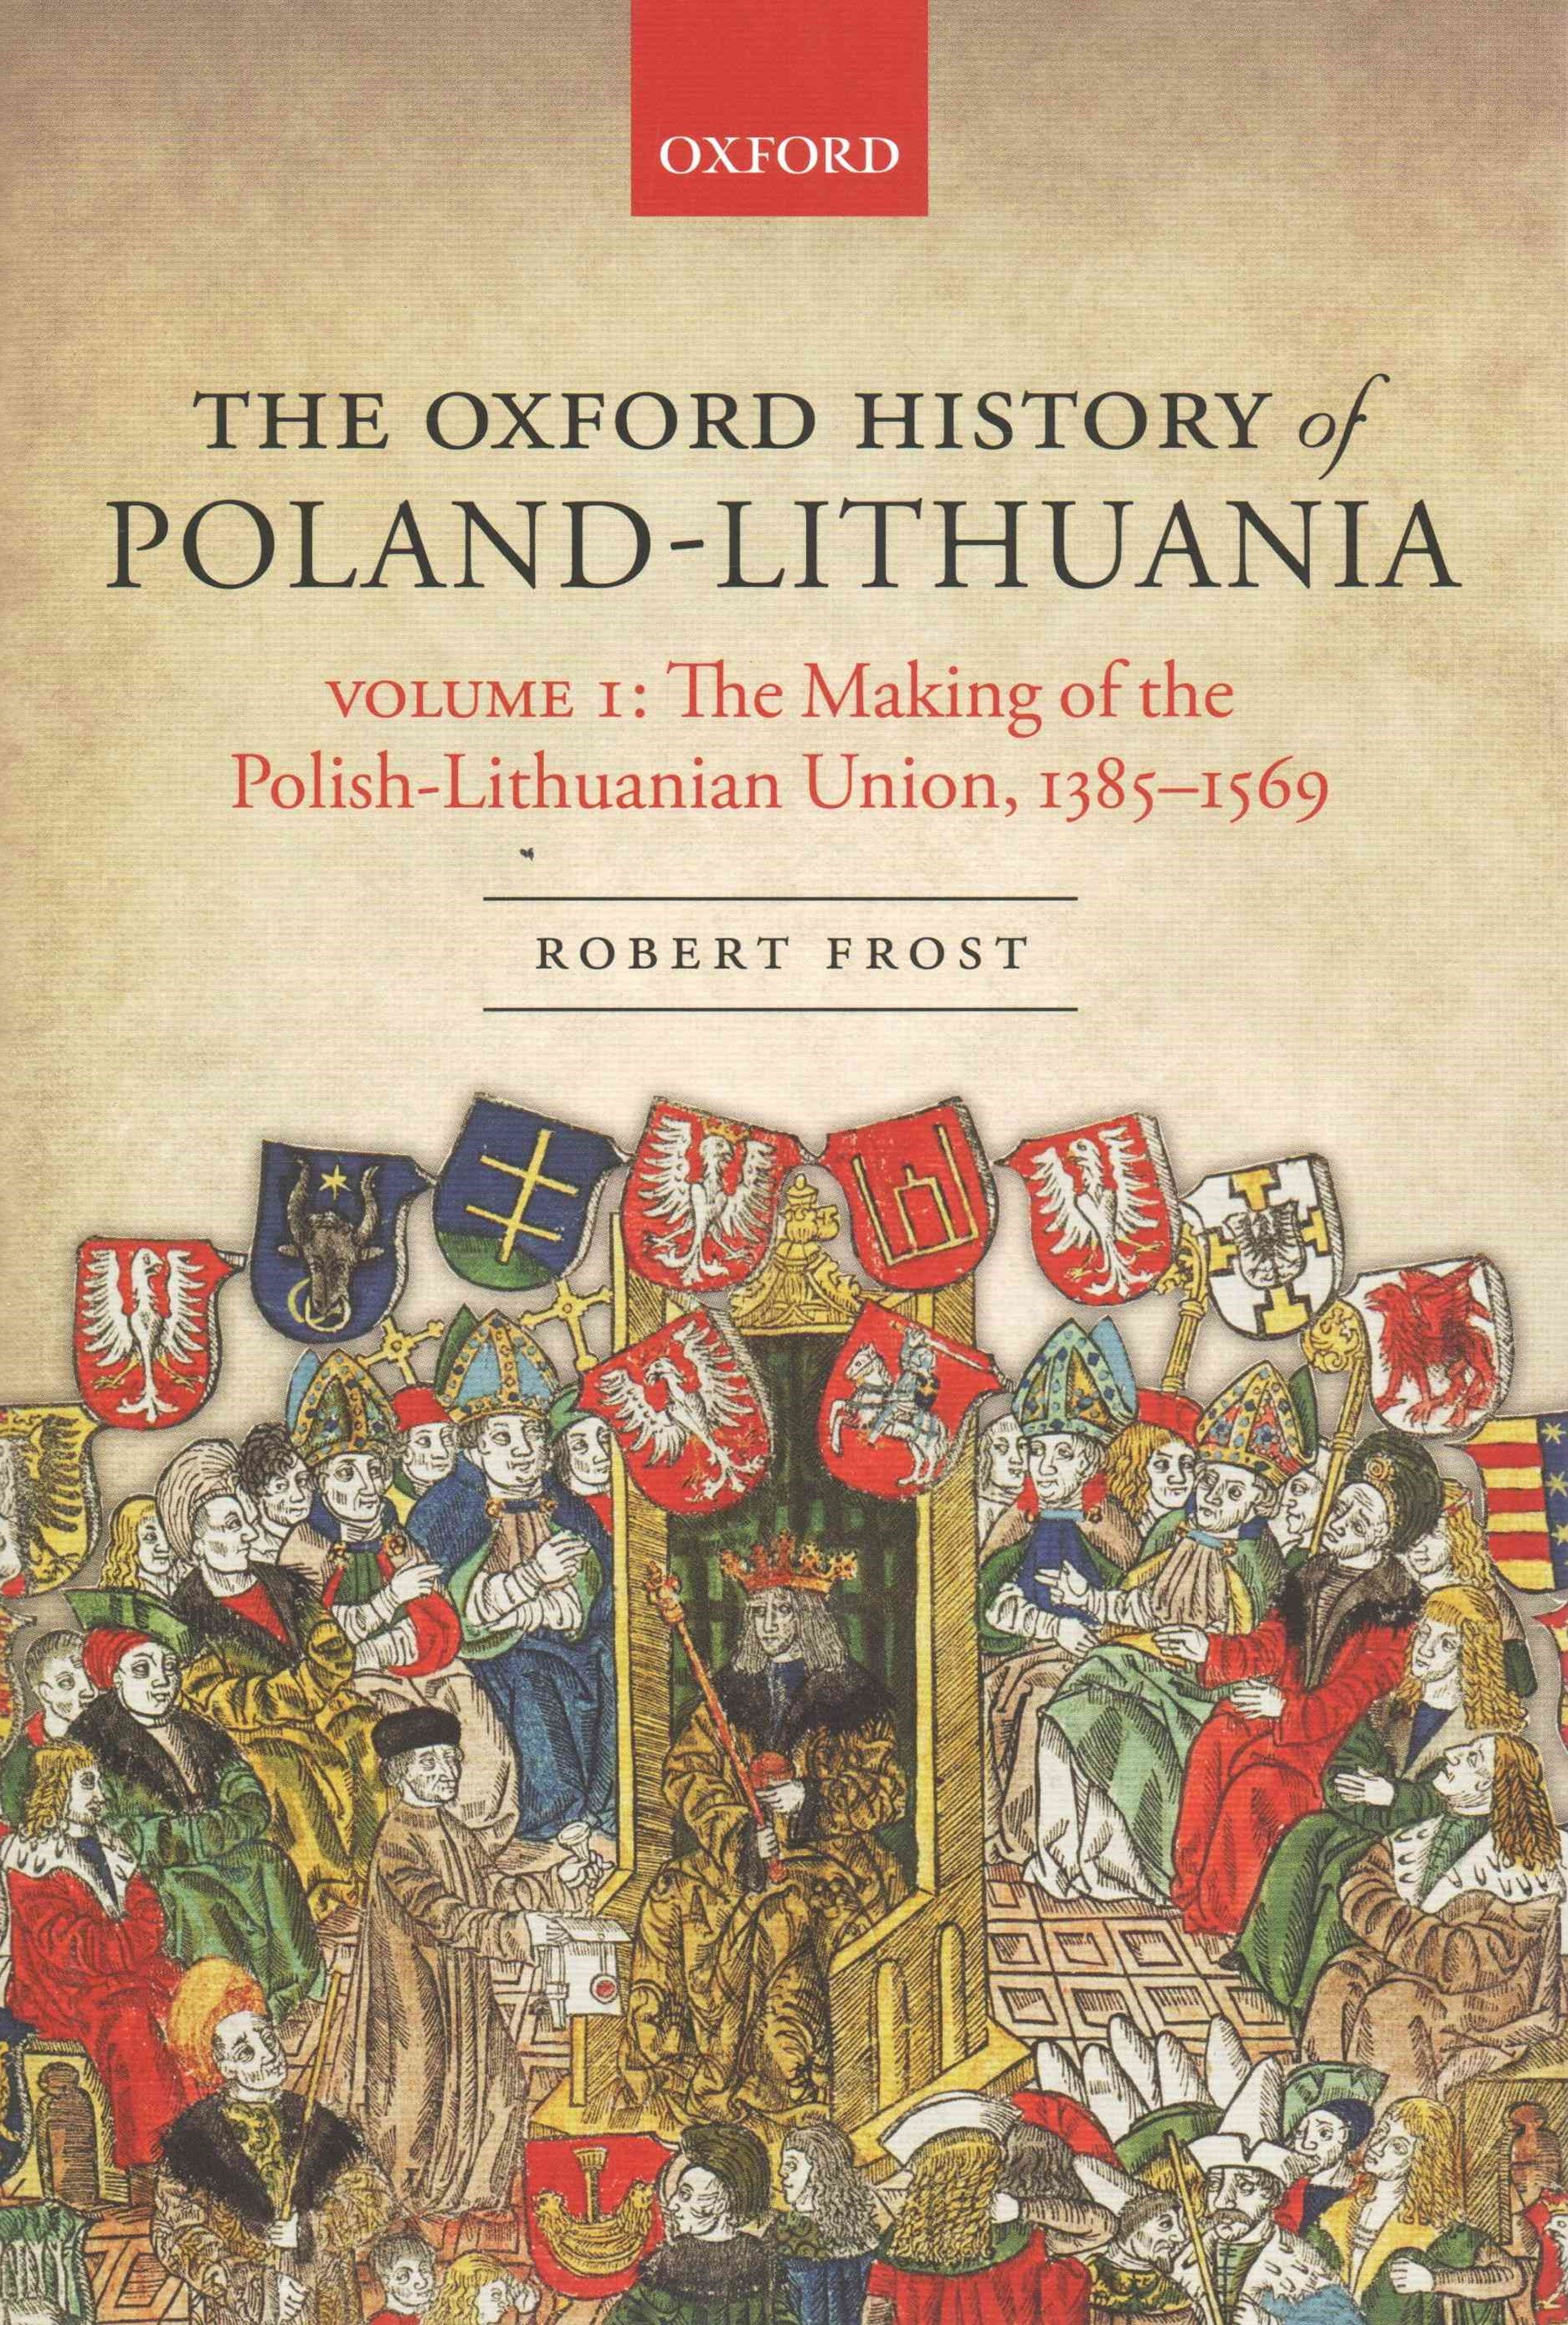 The Making of the Polish-Lithuanian Union 1385-1569